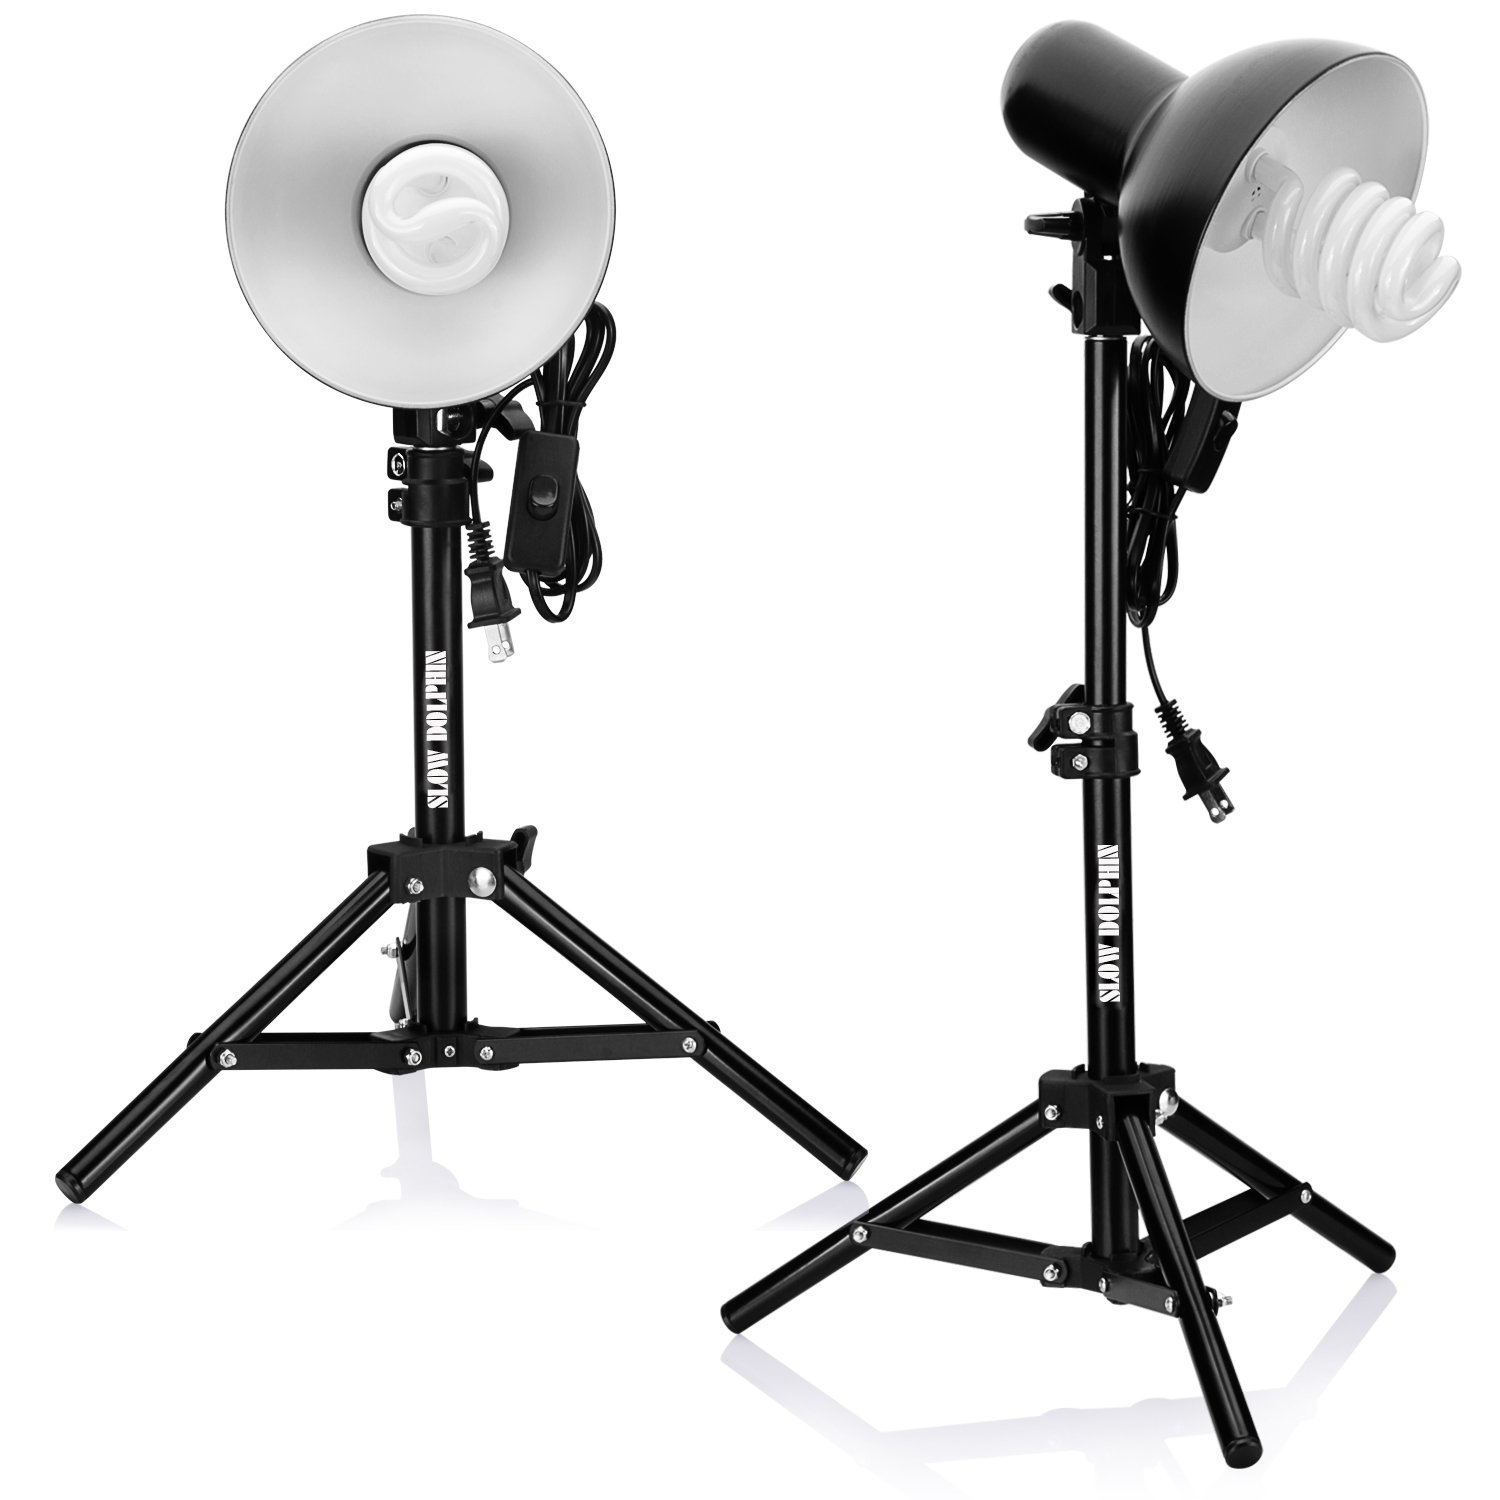 Slow Dolphin 2 x 45W Bulbs Photography Fluorescent Lamp Lighting kit(2 Sets)